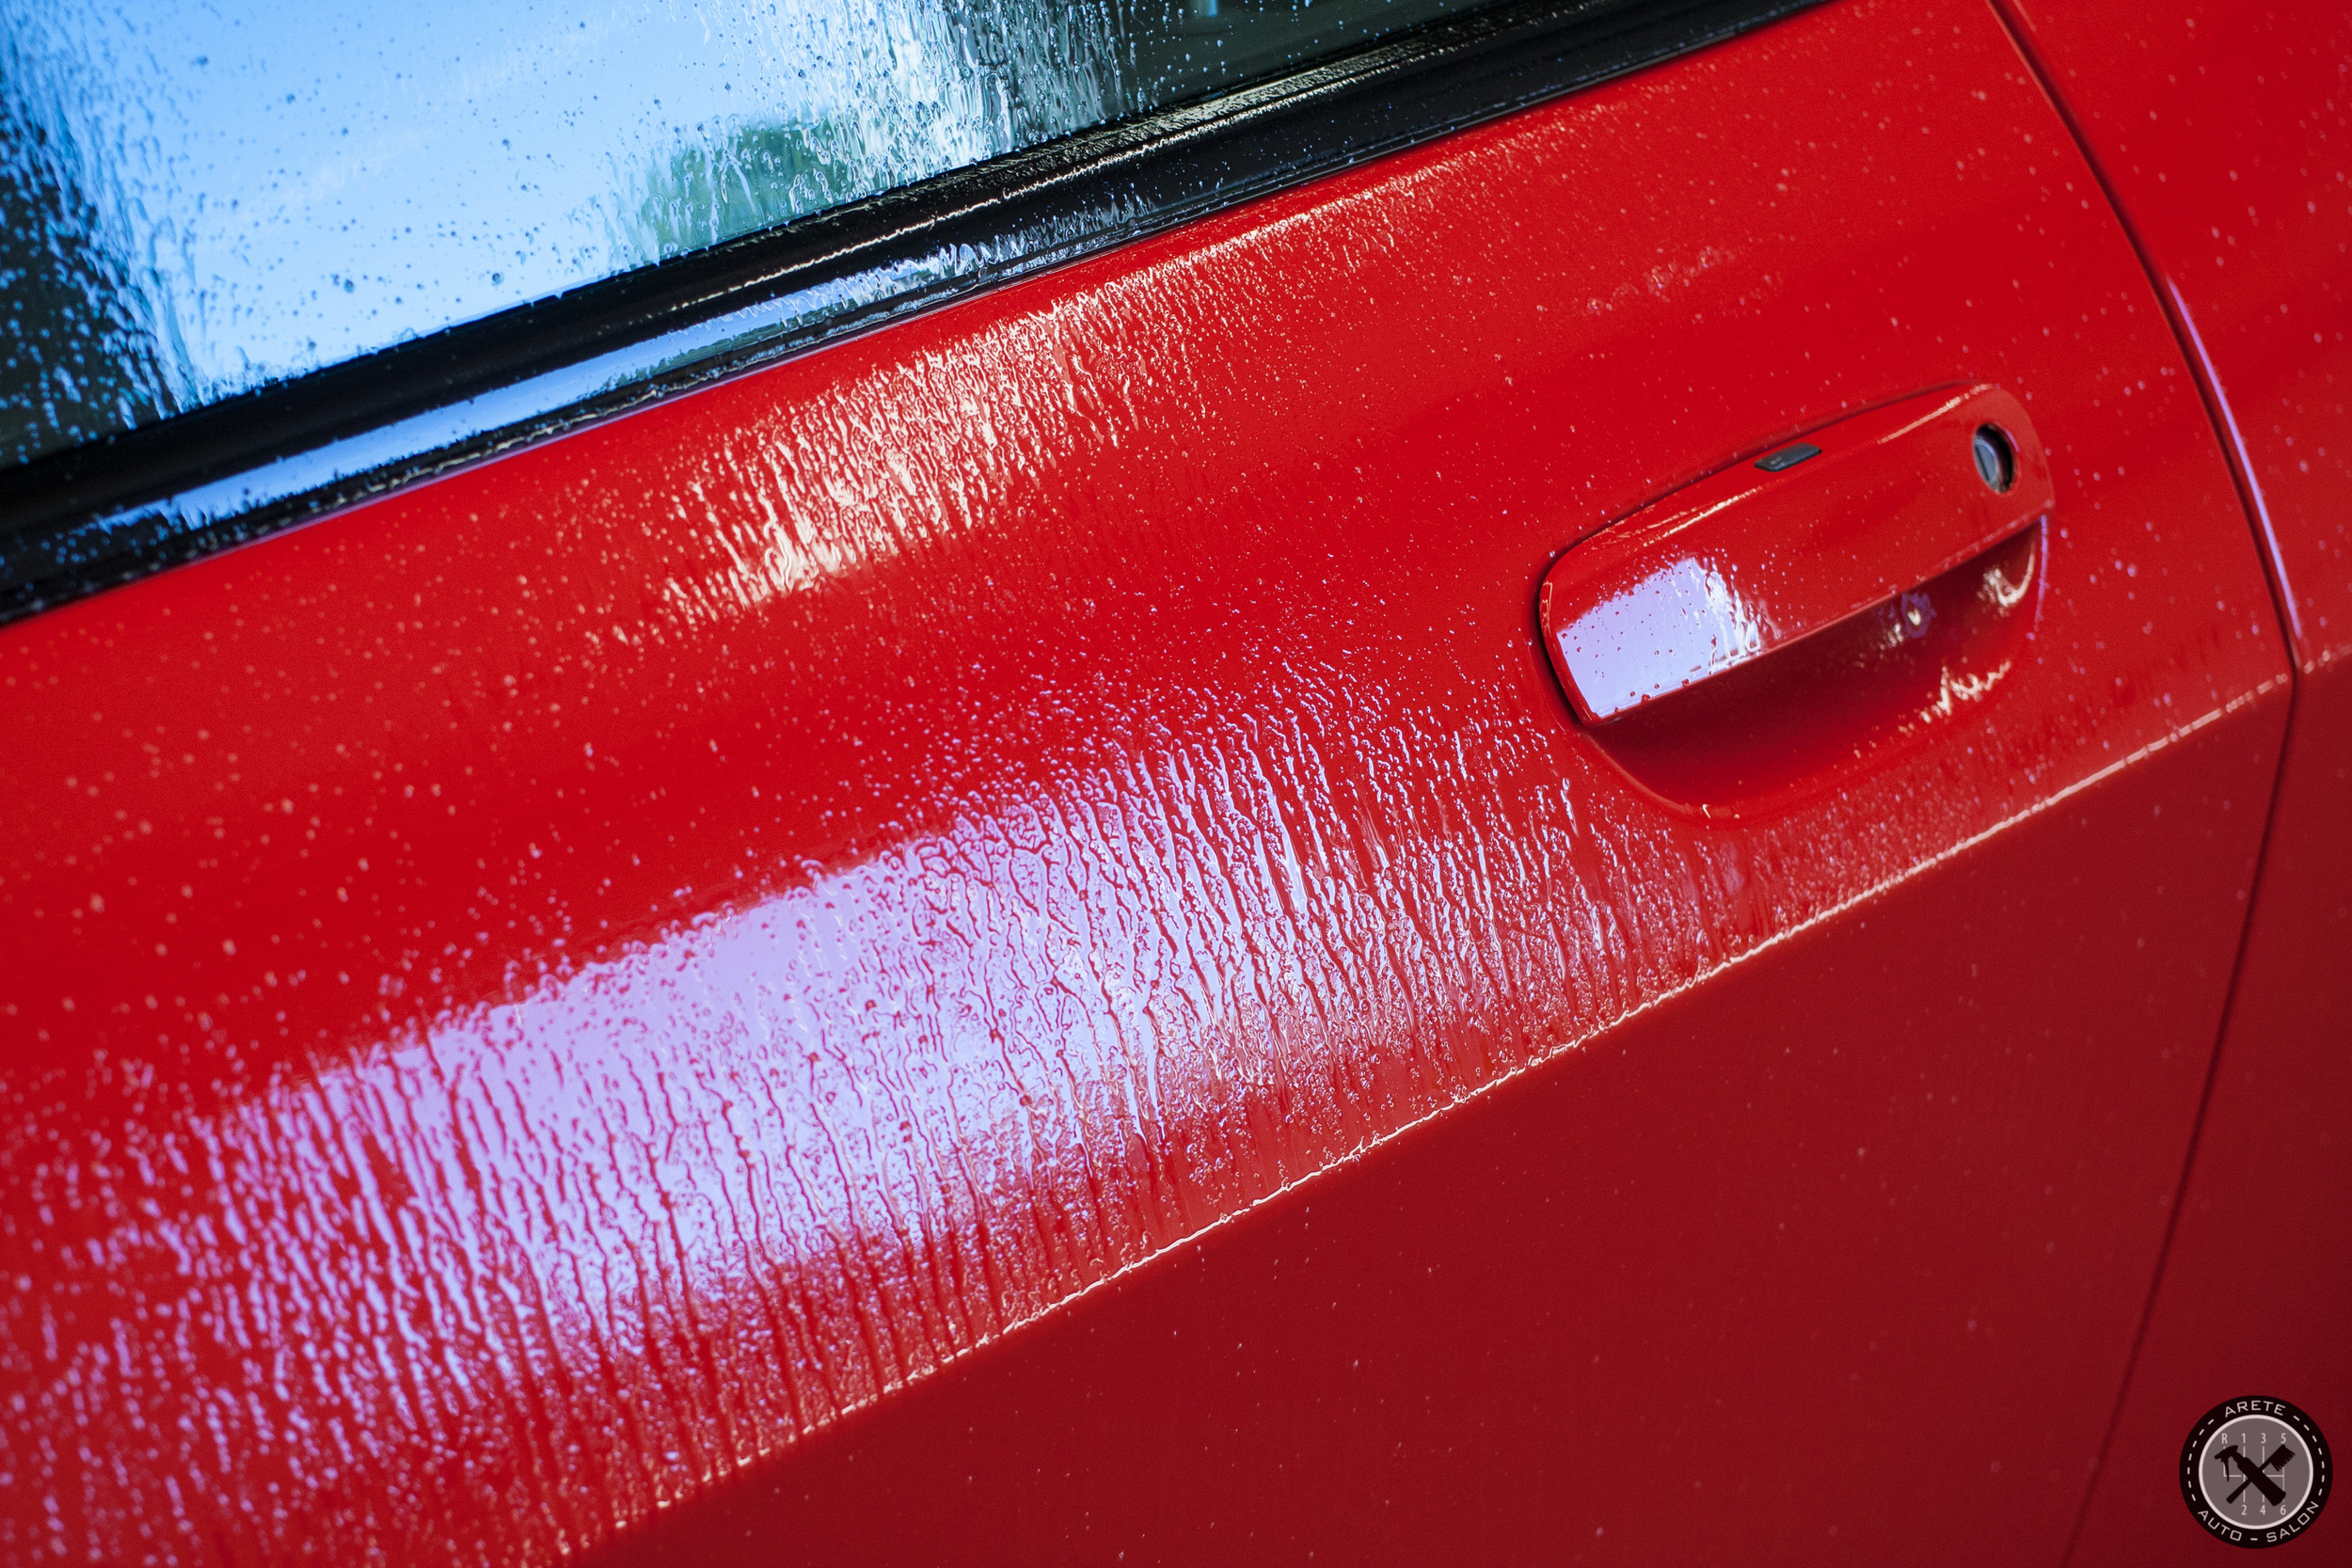 Iron-X was applied prior to our initial wash in order to remove embedded rail dust and loosen other contamination.